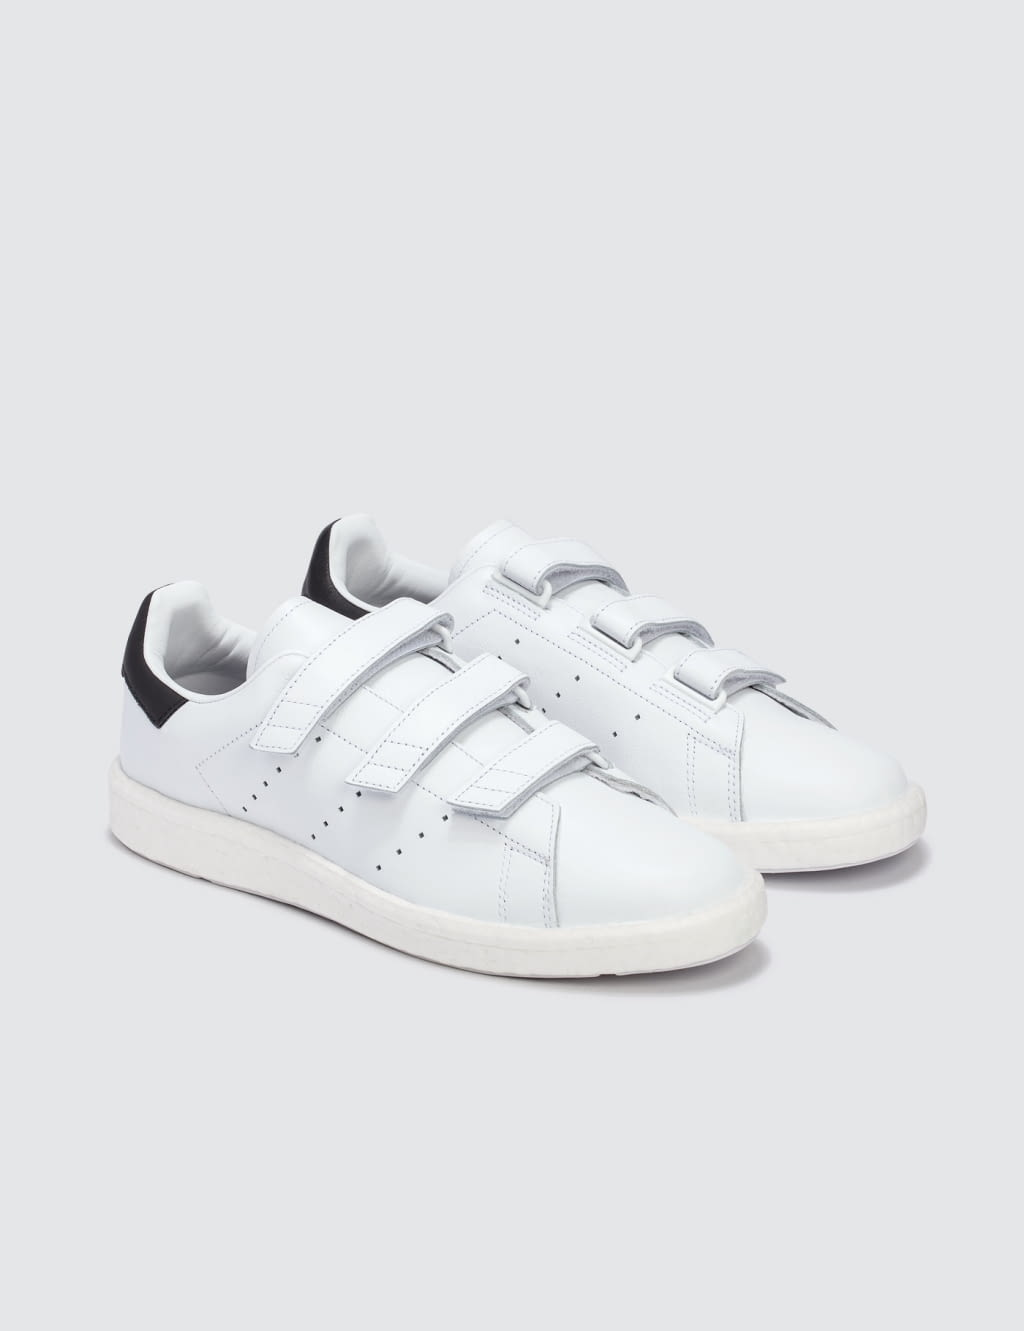 adidas stan smith all white mountaineering backpack images free